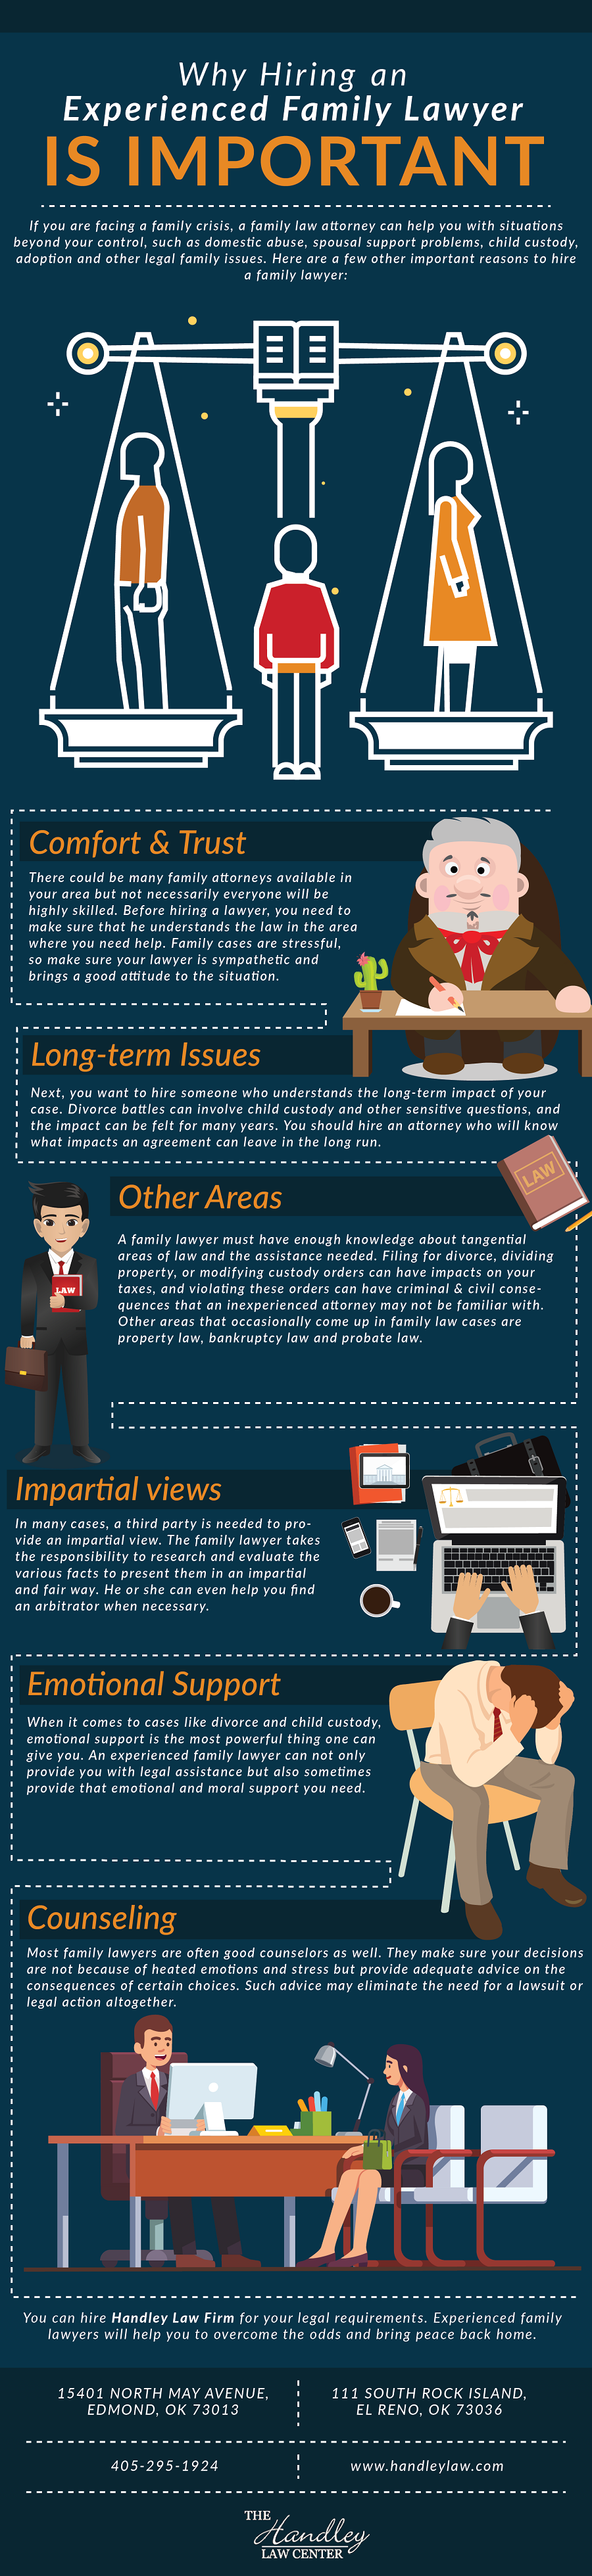 Why Hiring an Experienced Family Lawyer is Important.png